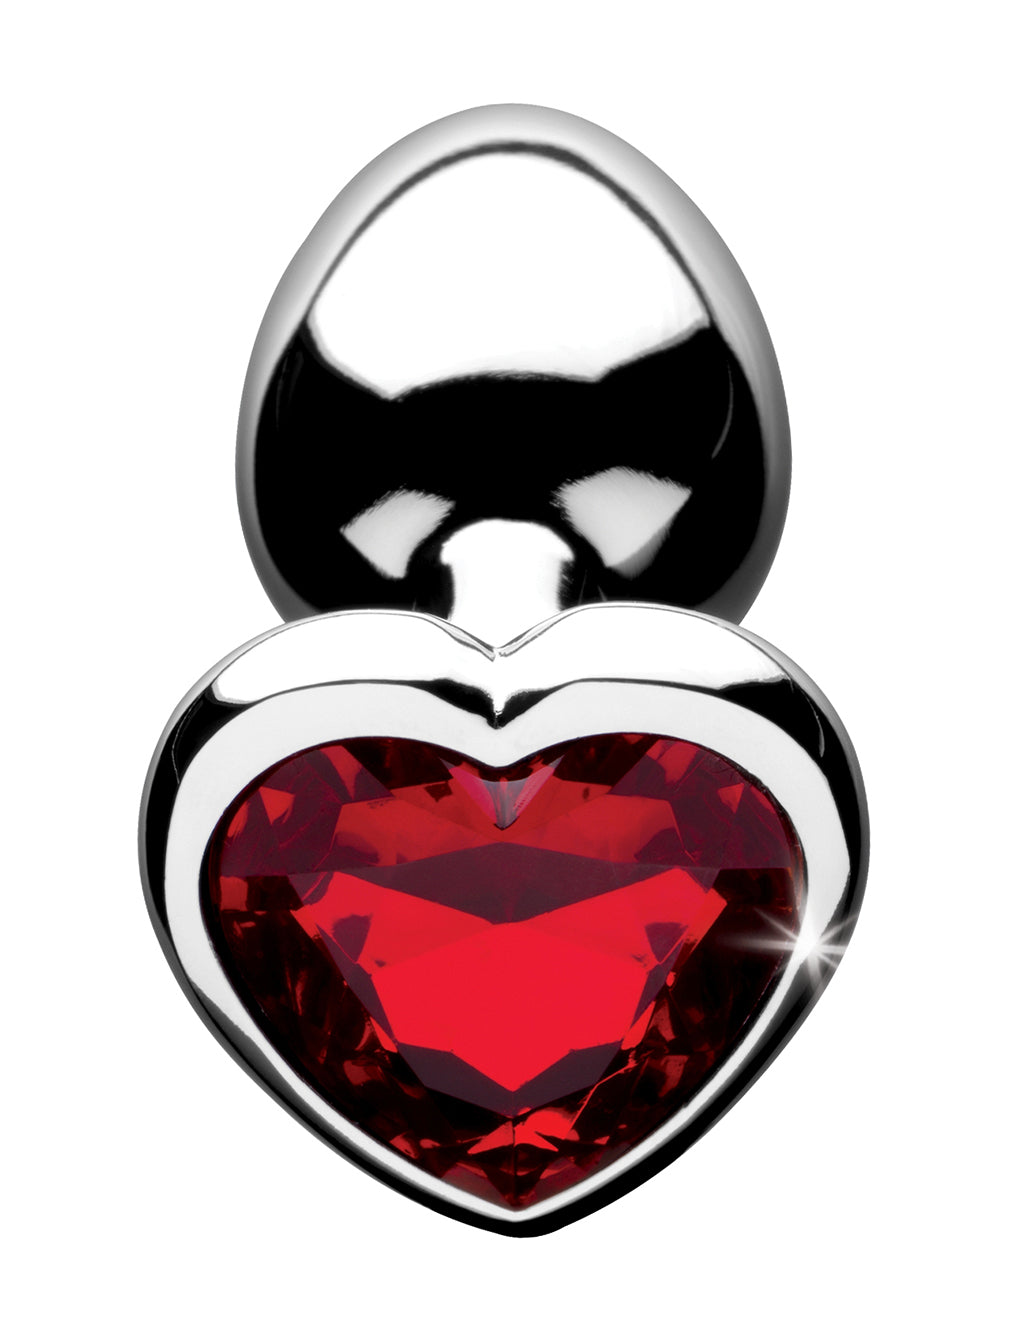 Booty Sparks Red Heart Gem Anal Plug- Small- Top